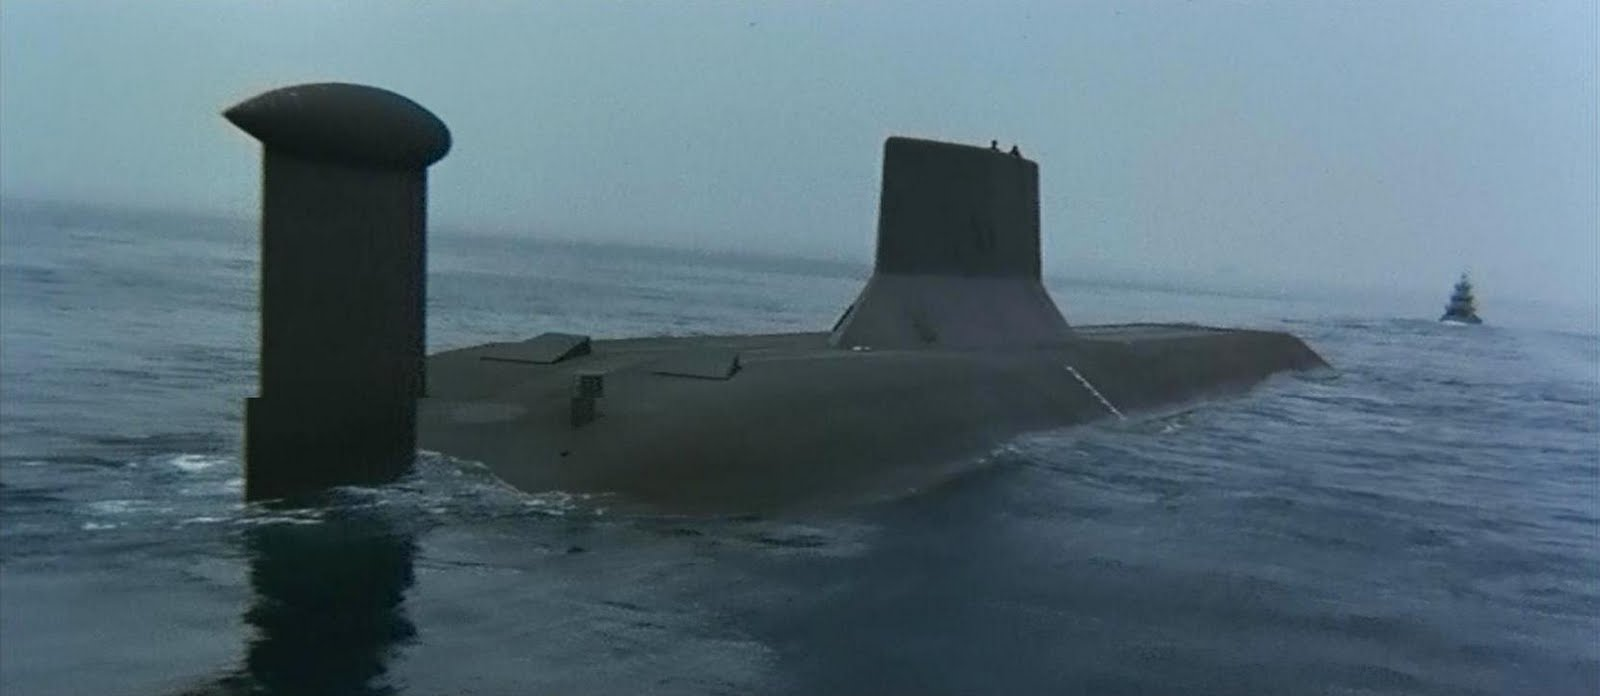 China's new submarine engine is poised to revolutionize underwater warfare